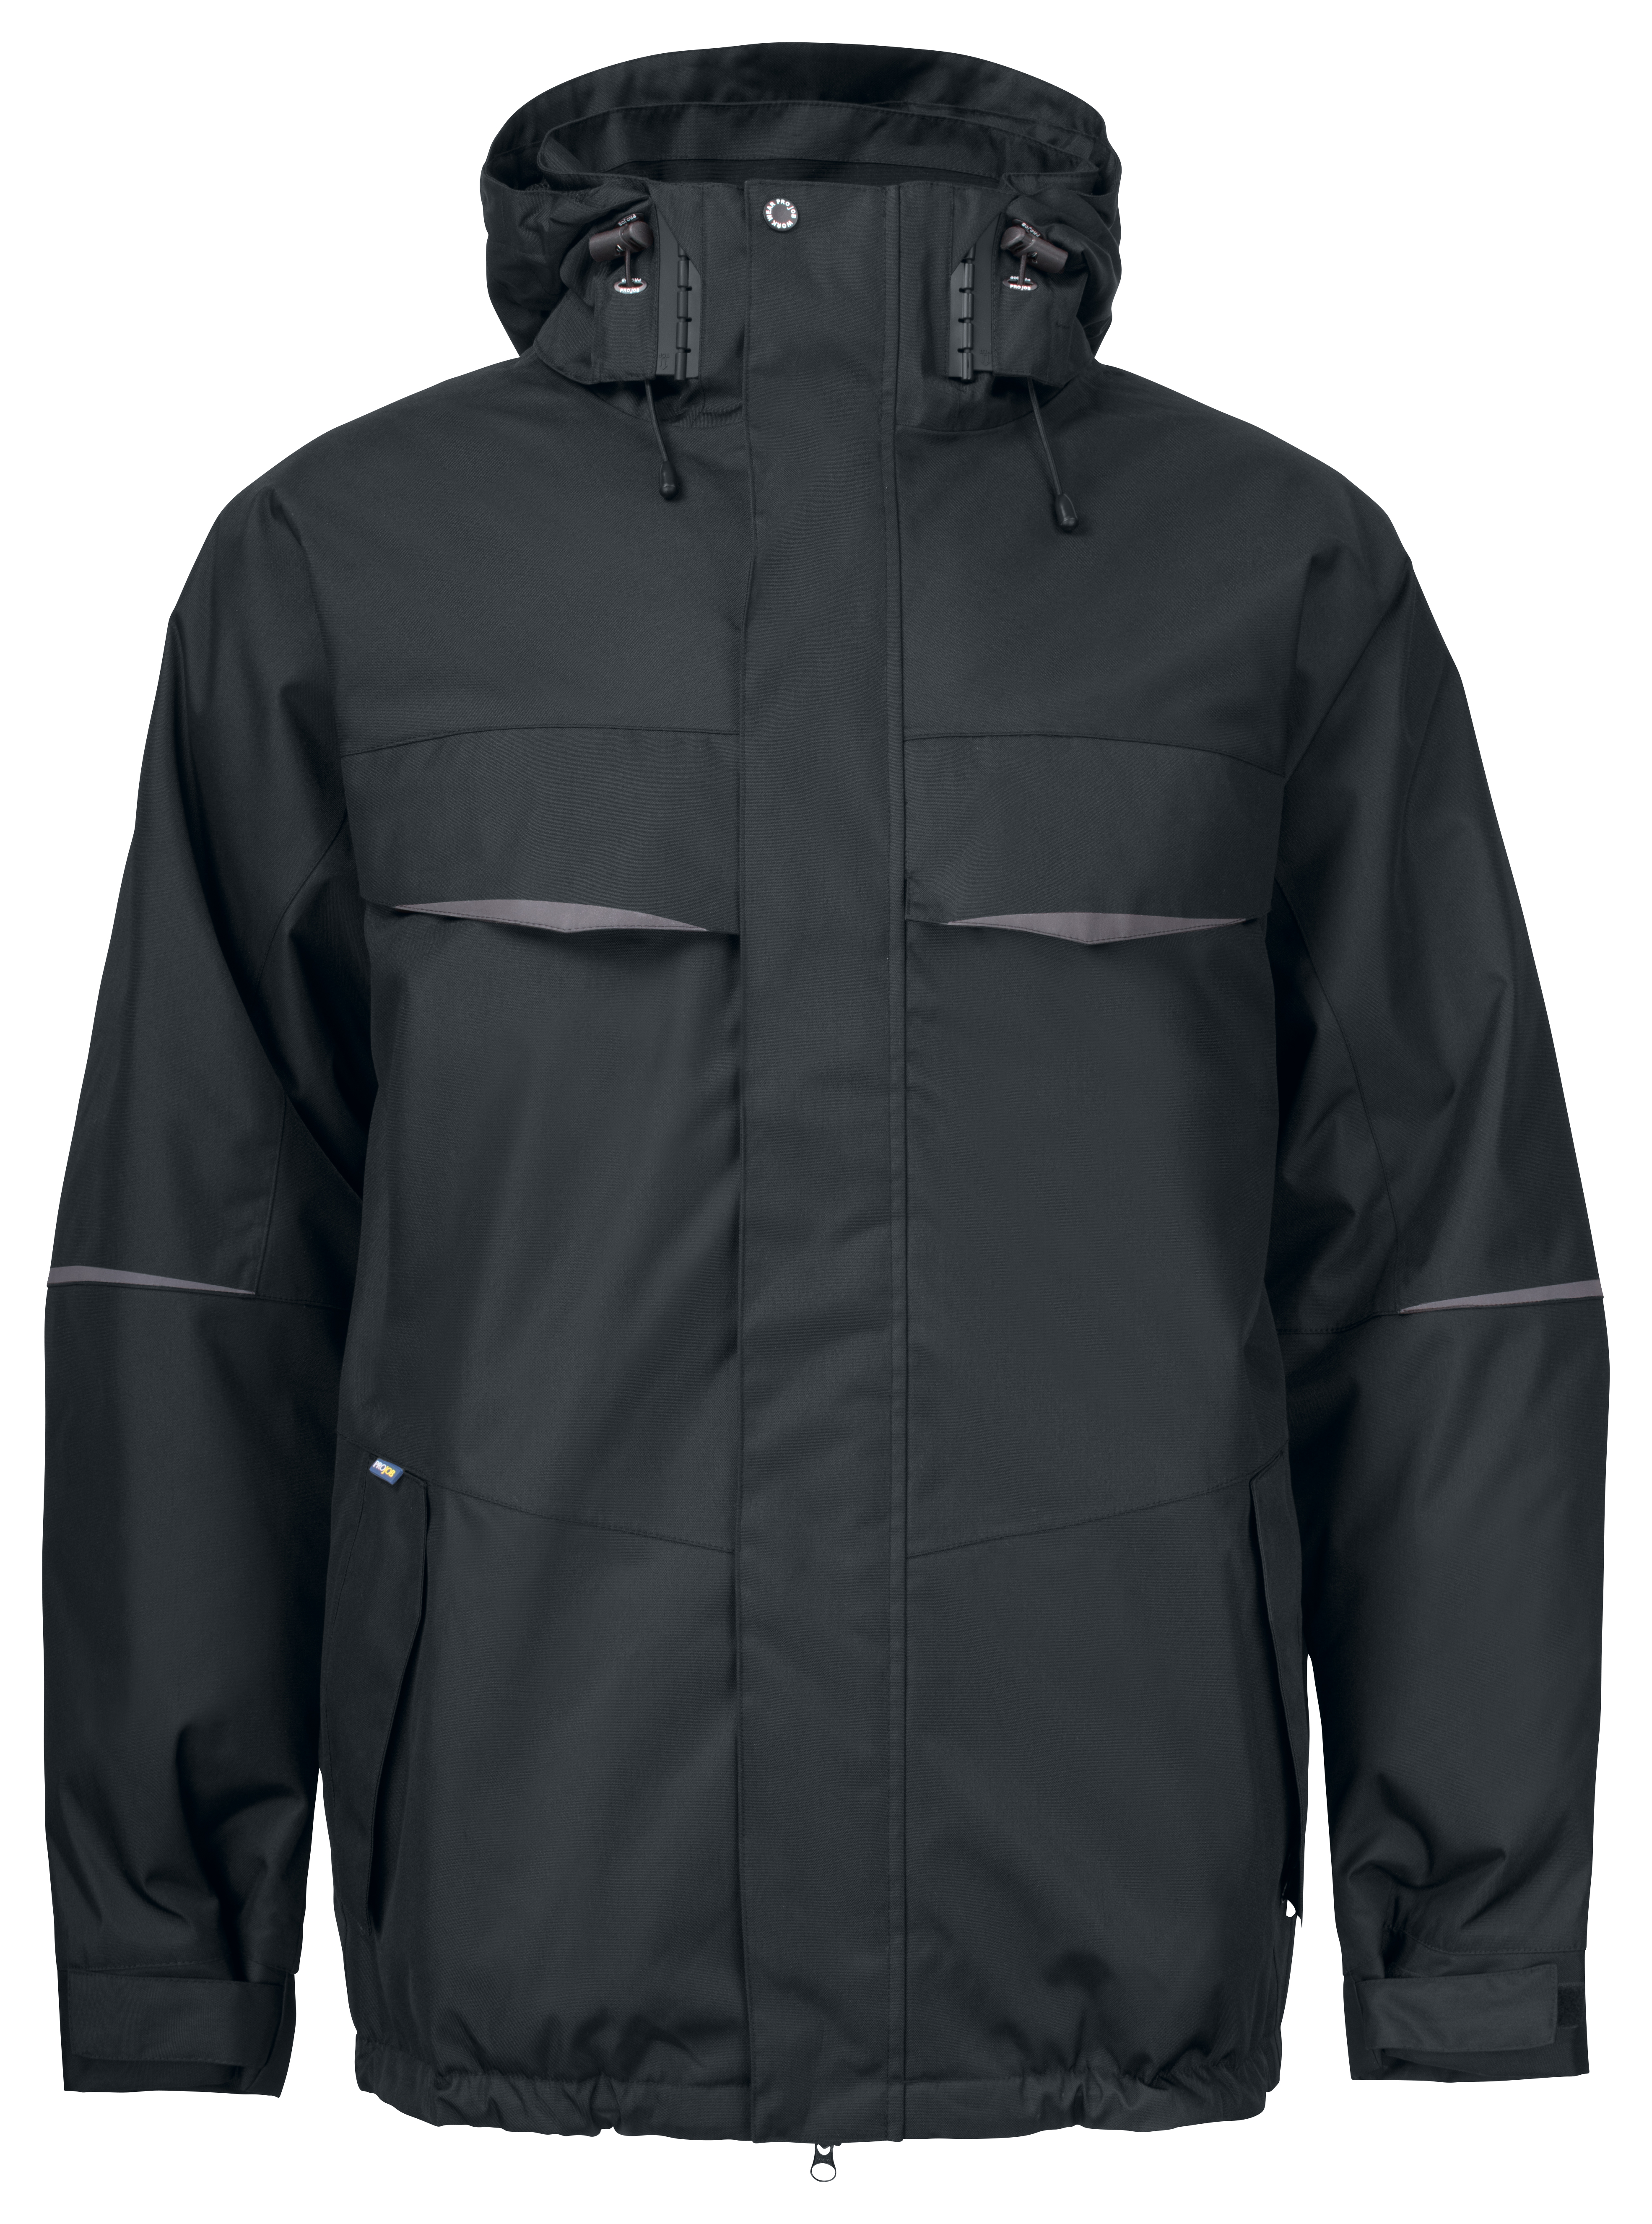 PROJOB 4423 PADDED JACKET  - Mannen